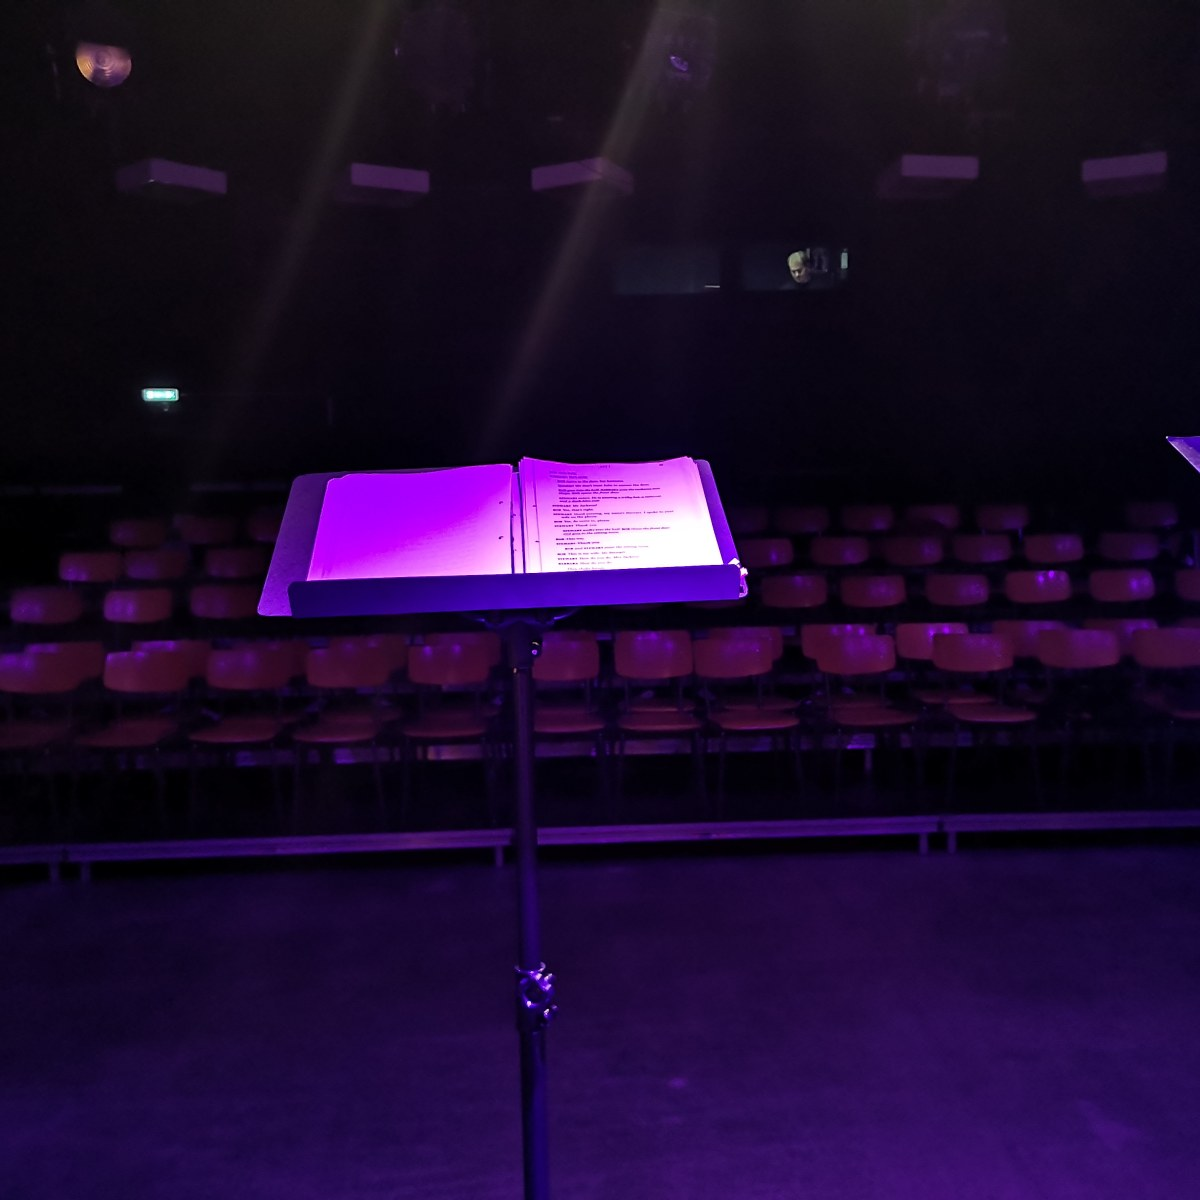 Waiting for theAudience